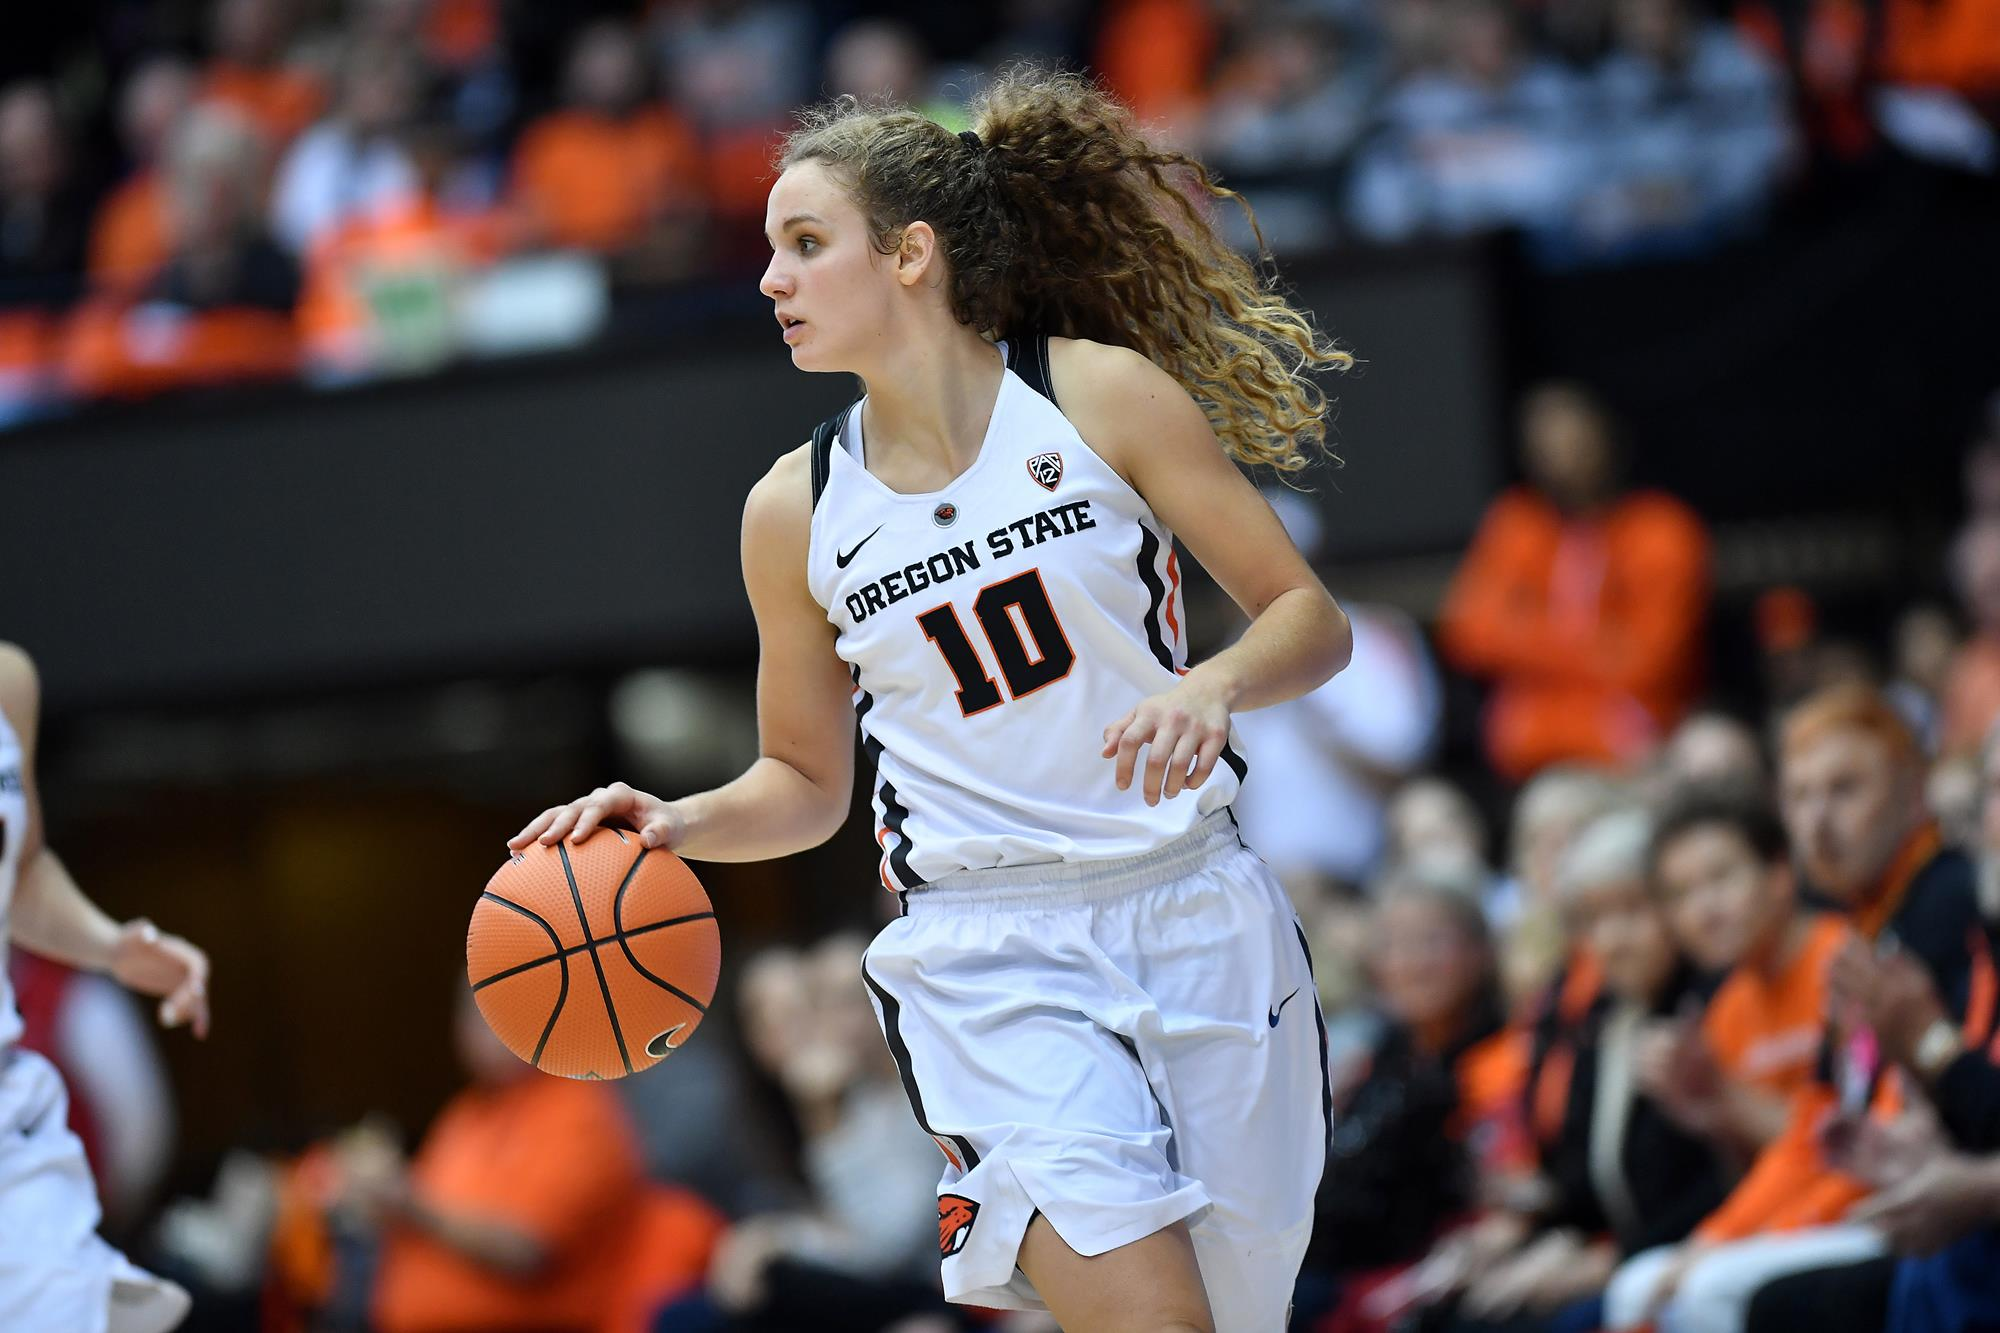 2018-19 season tickets available now - oregon state university athletics